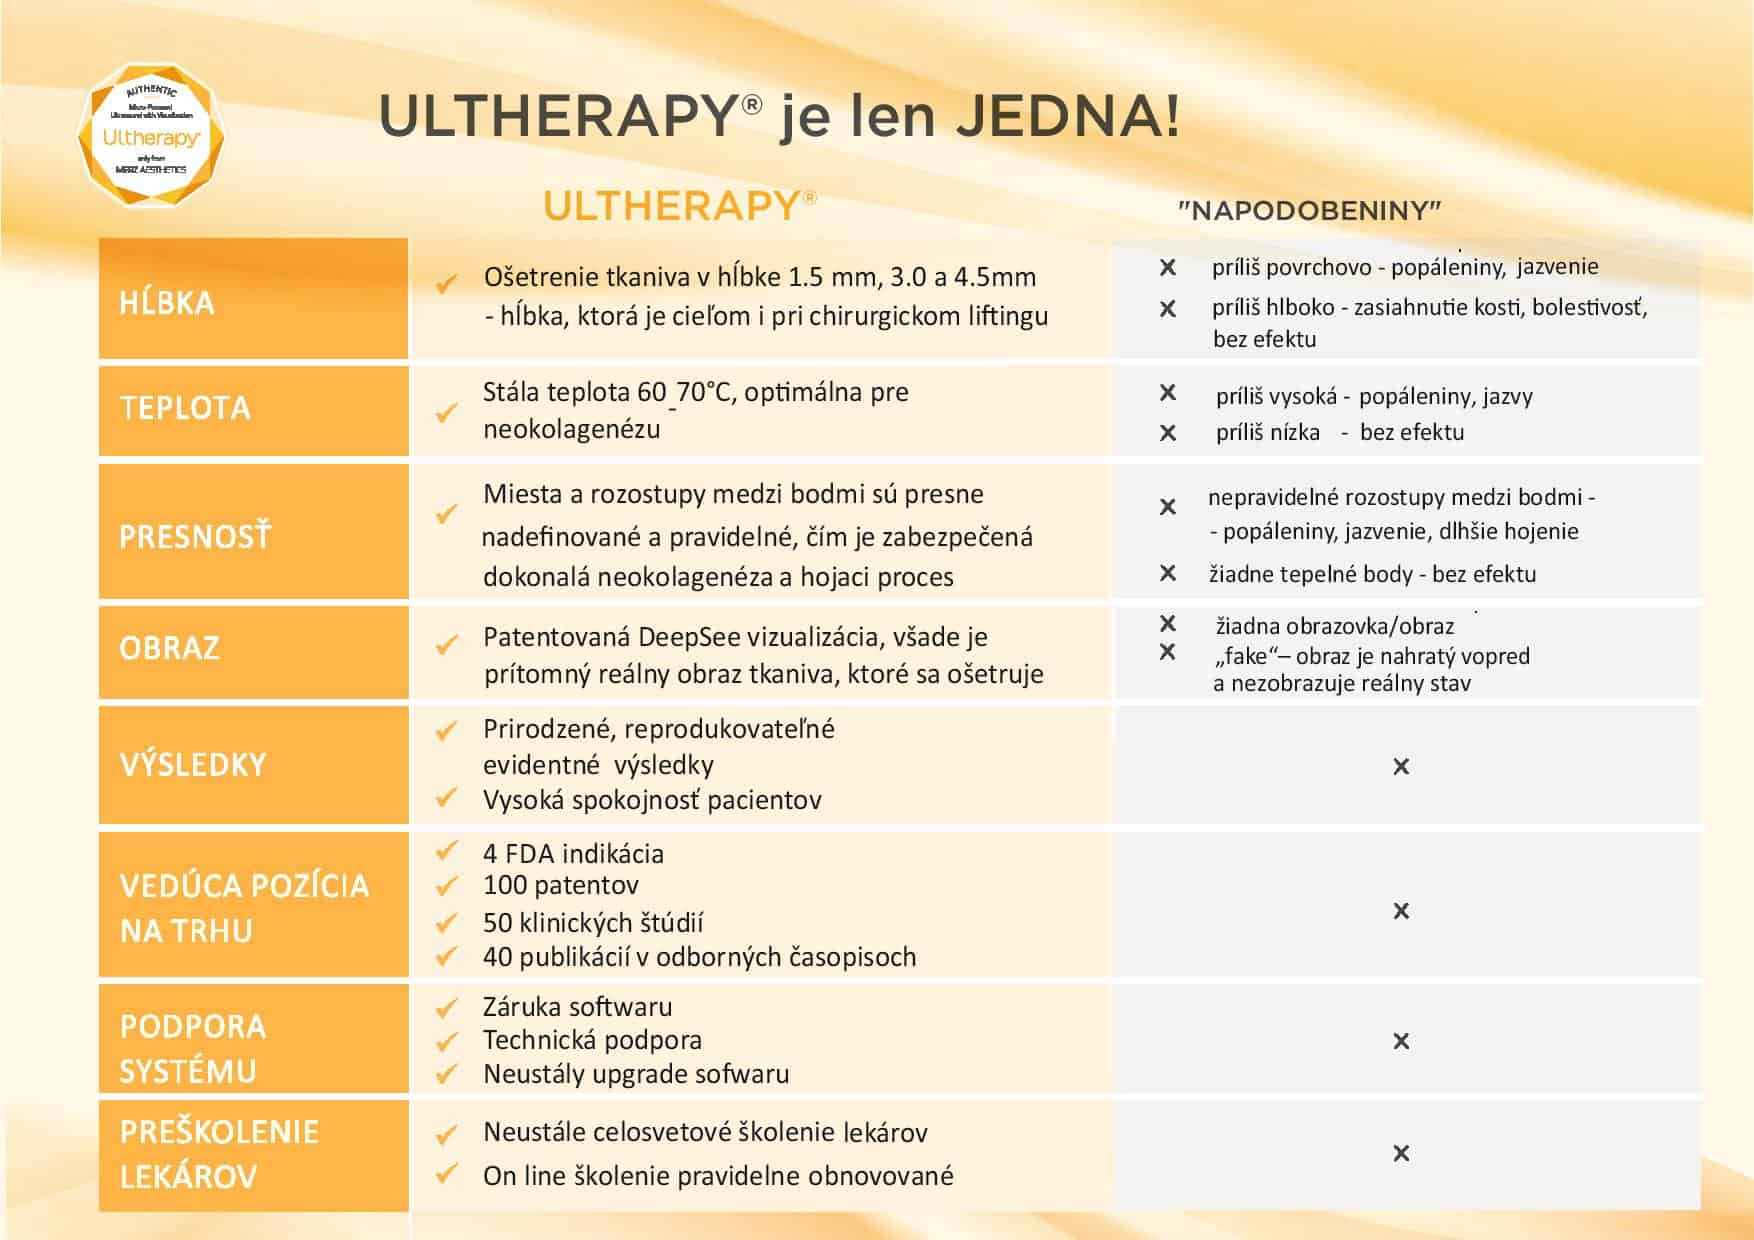 ULTHERAPY®